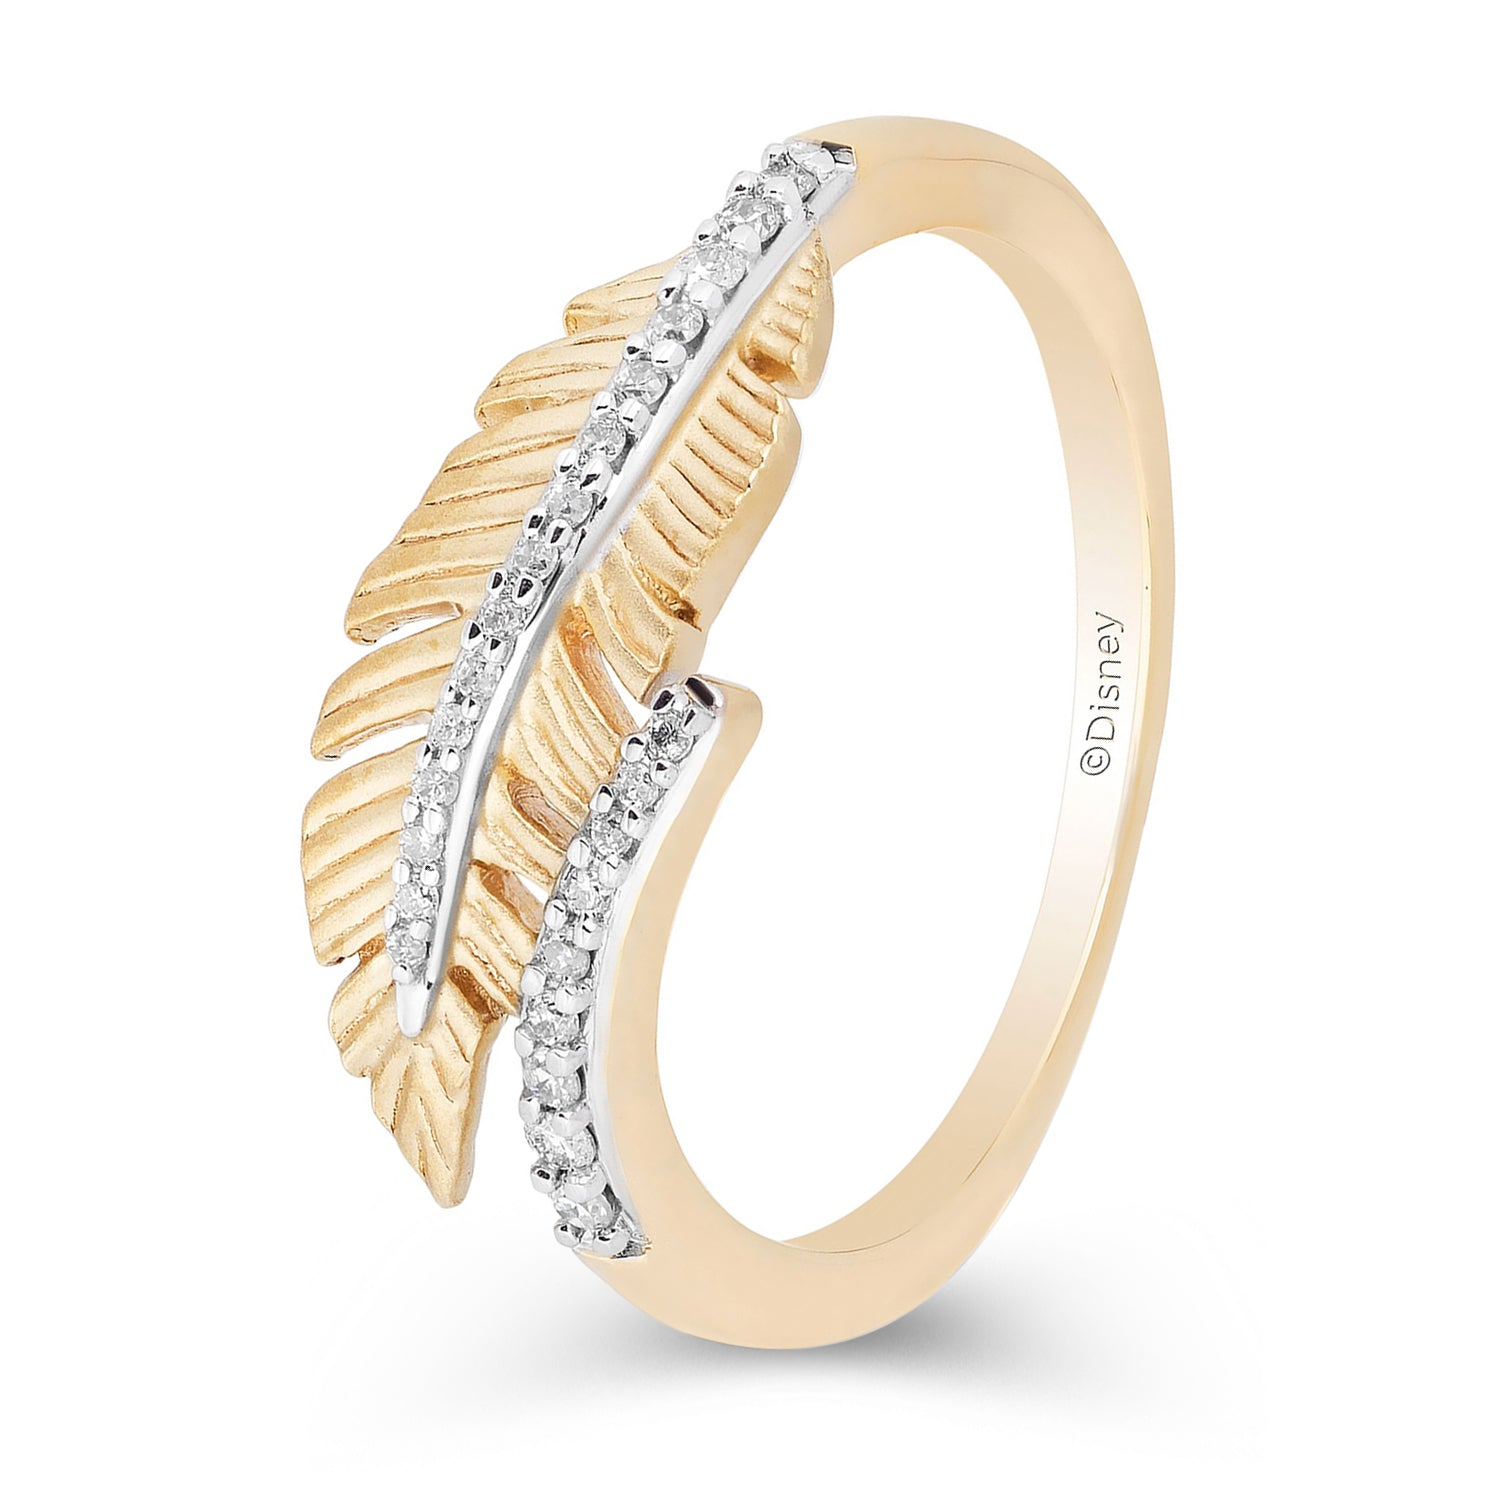 enchanted_disney-pocahontas_feather_ring-10k_white_and_yellow_gold_1/10CTTW_4